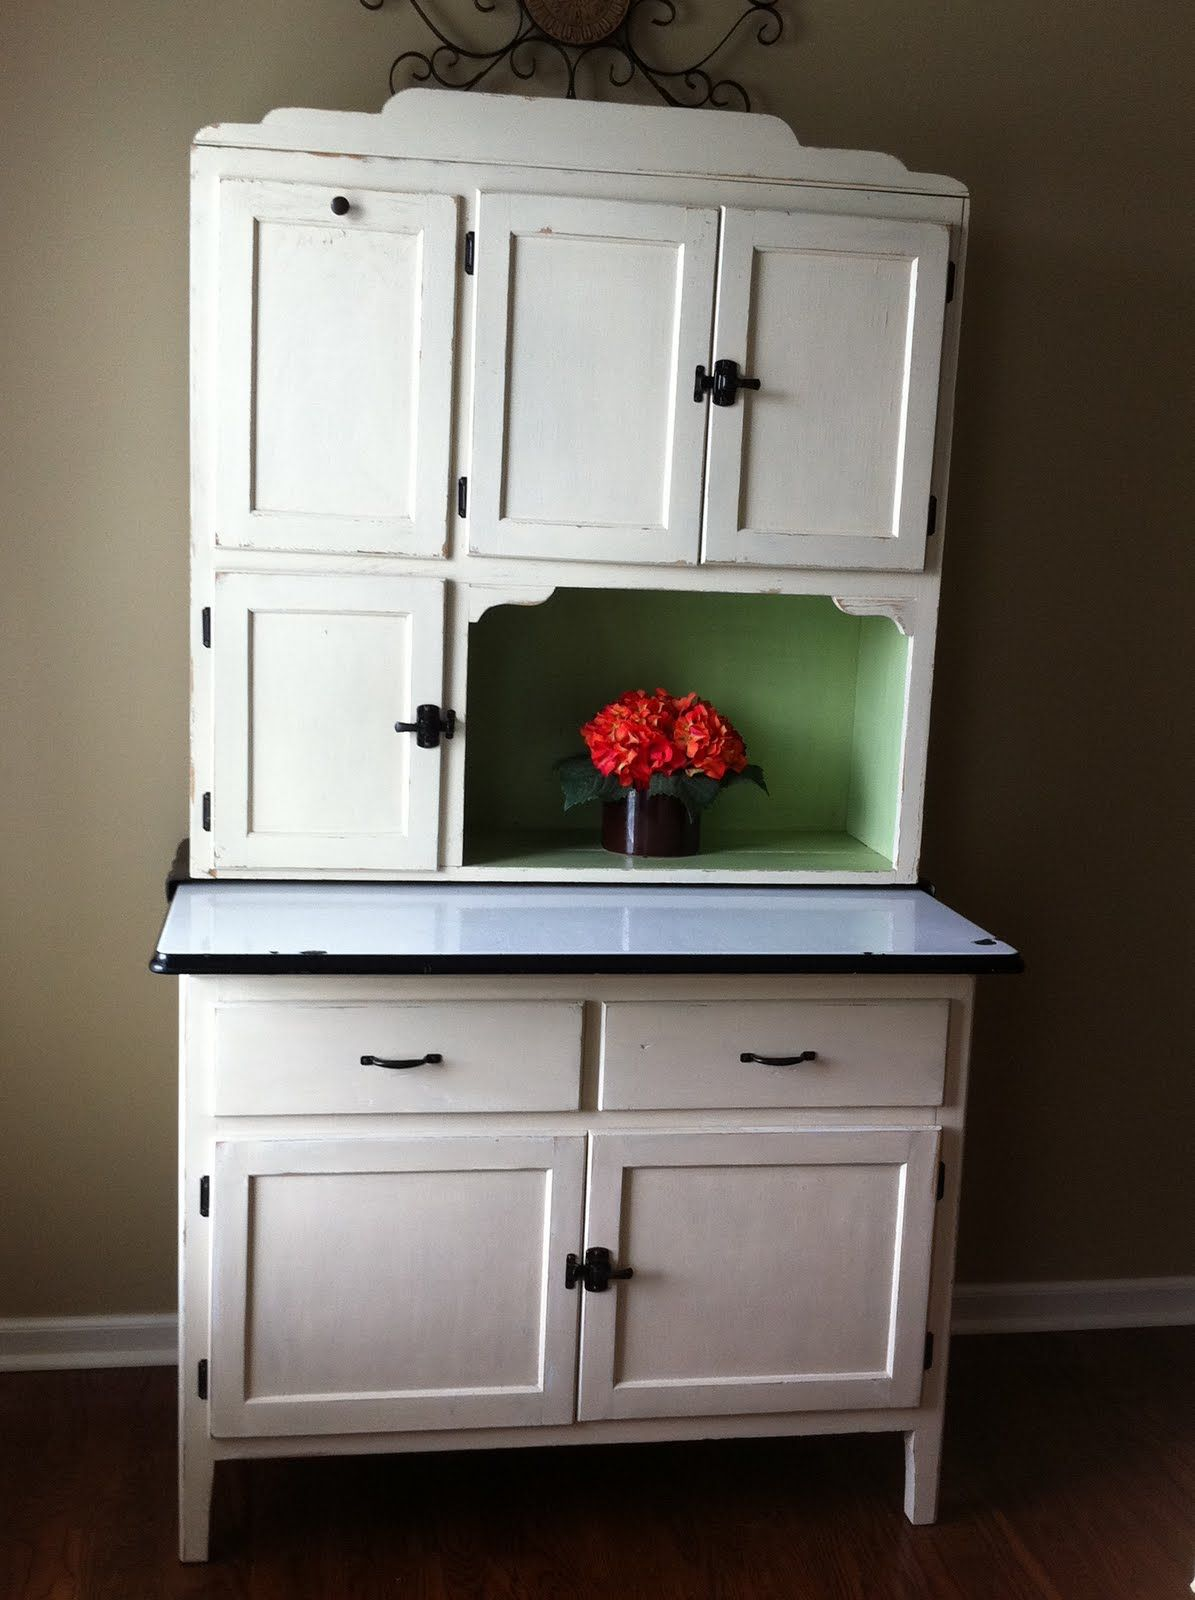 Hoosier Style Kitchen Cabinet Painting A Hoosier Cabinet When Redoing Furniture The